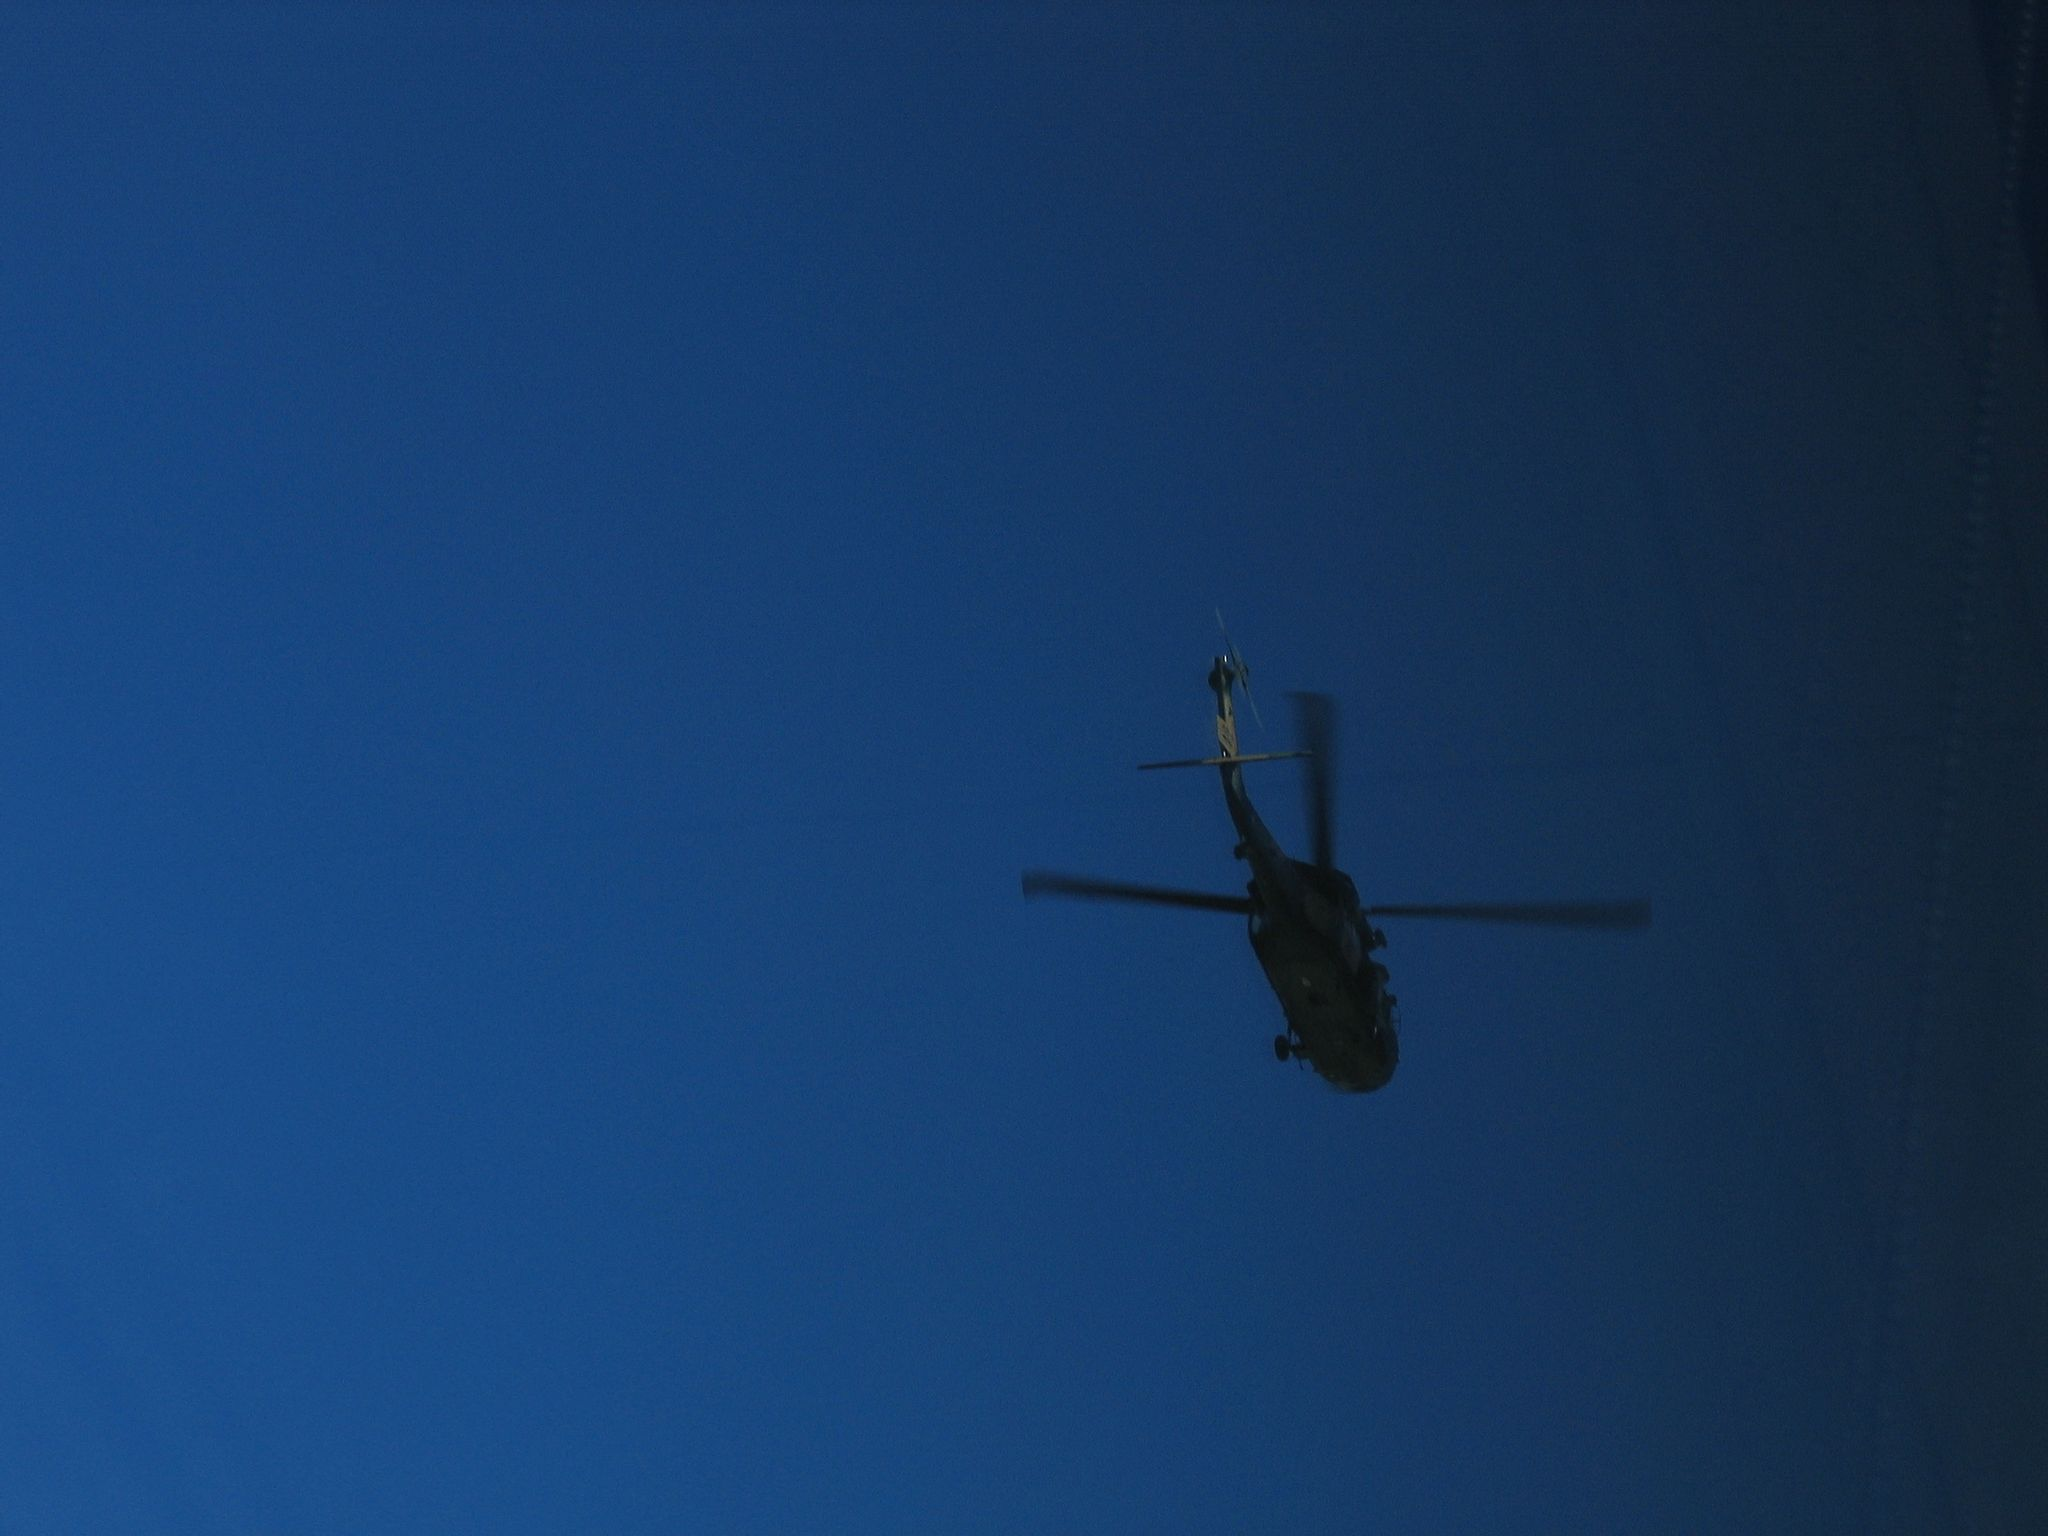 An photo of a Blackhawk Helicoper in the sky.